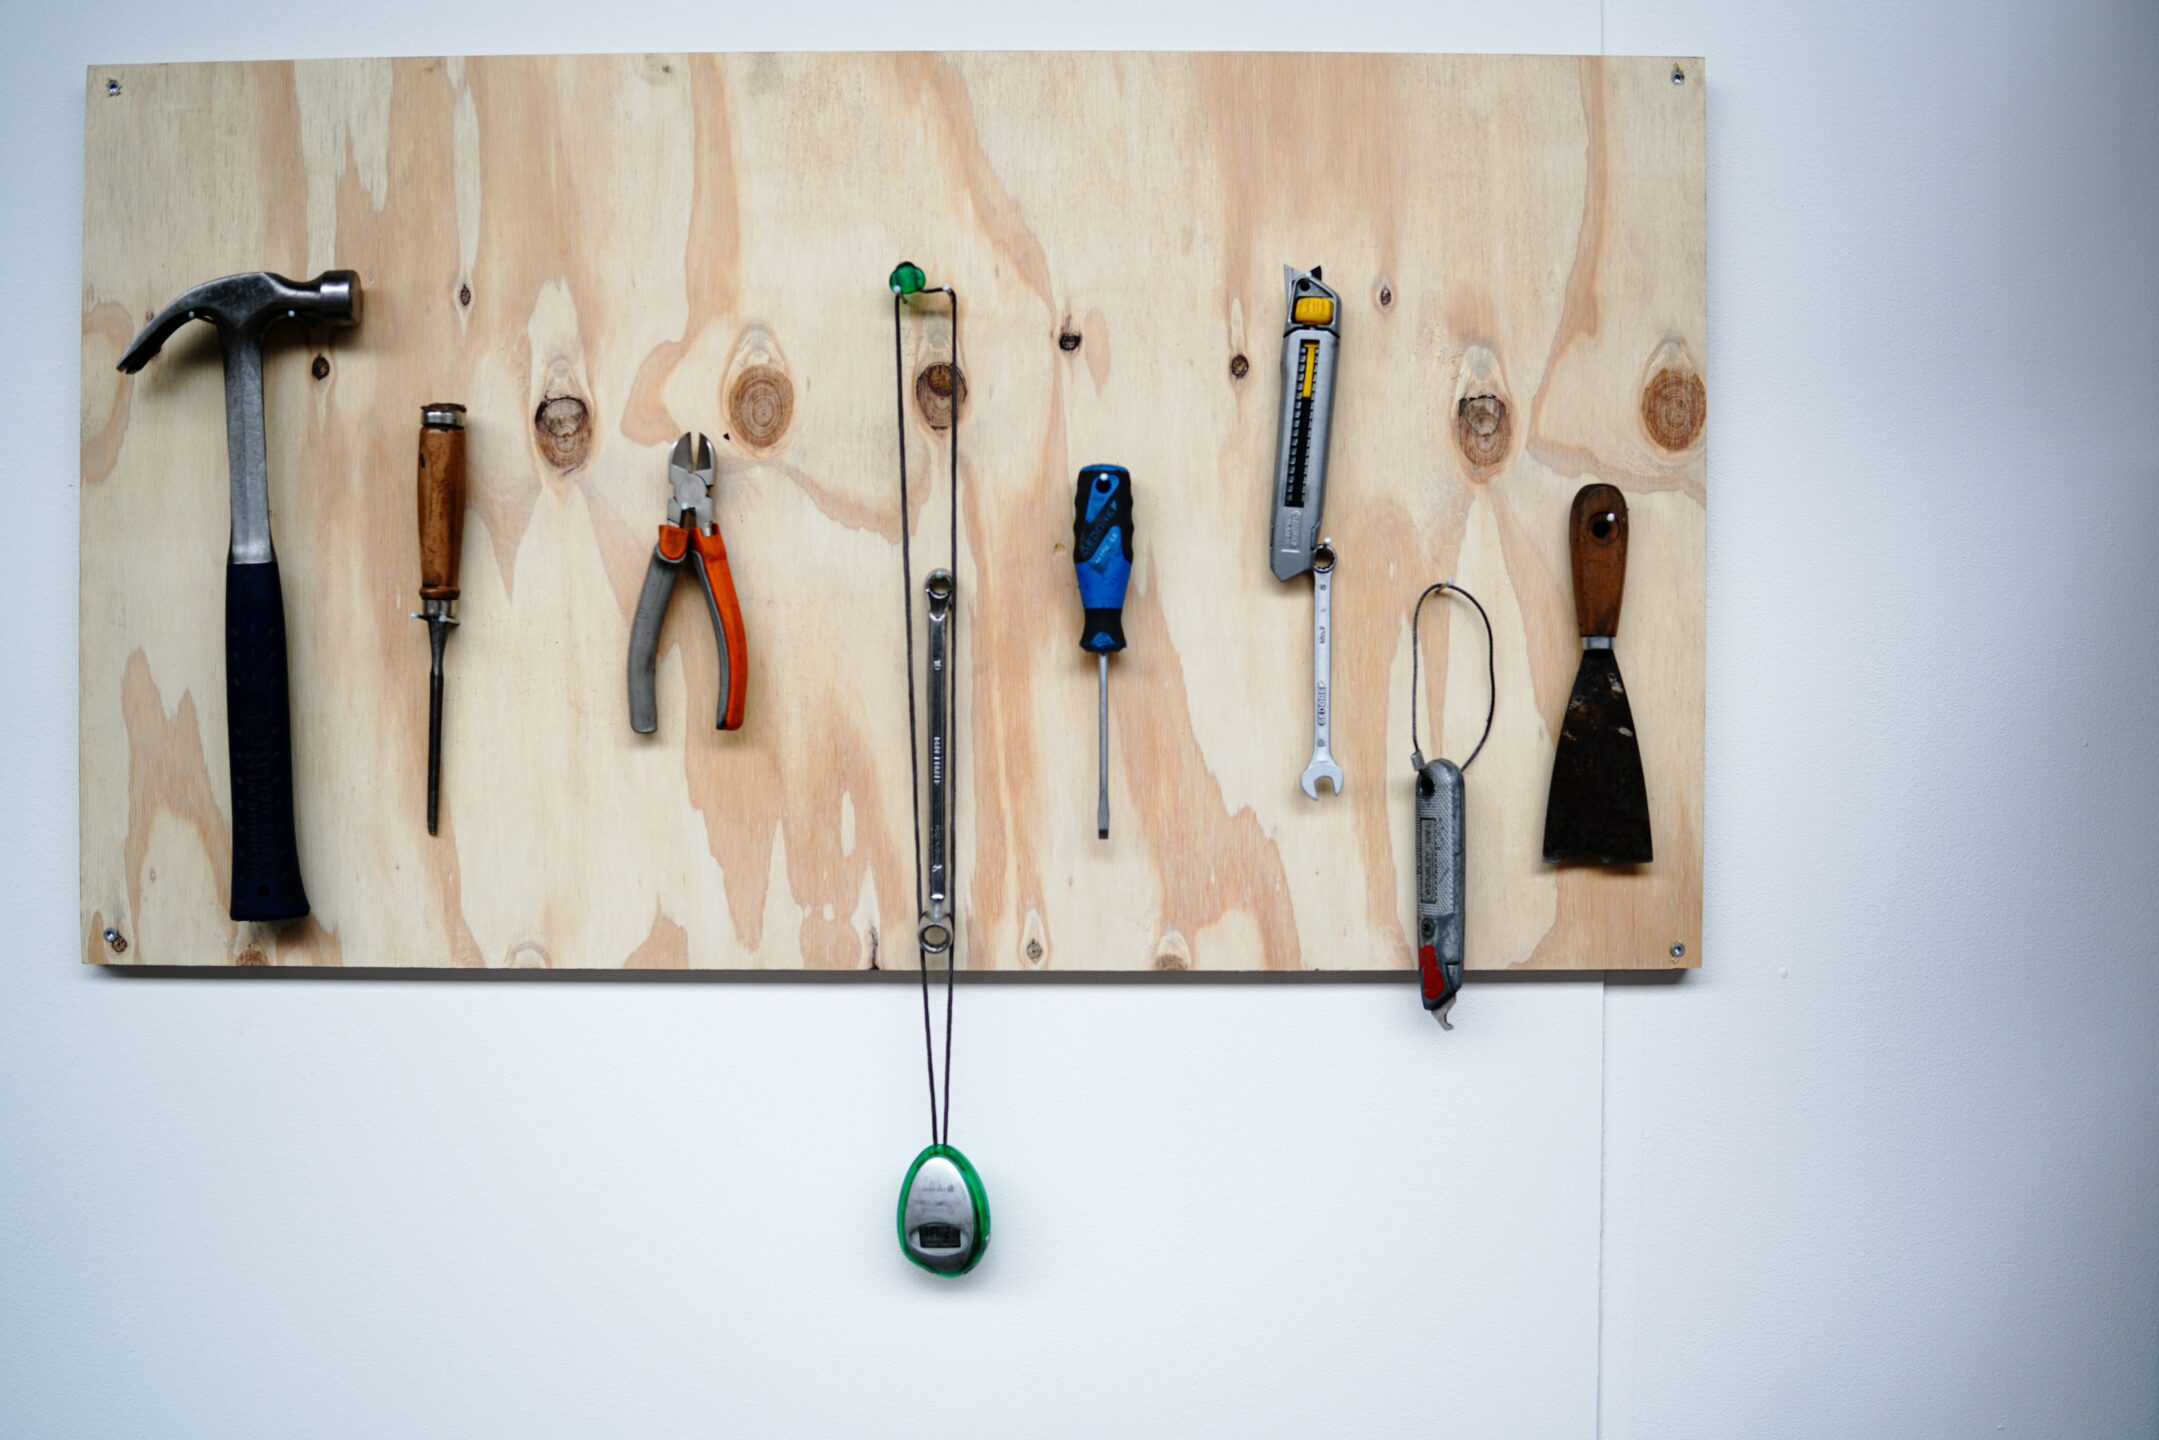 5 Things That Should Be in Your Business Toolkit